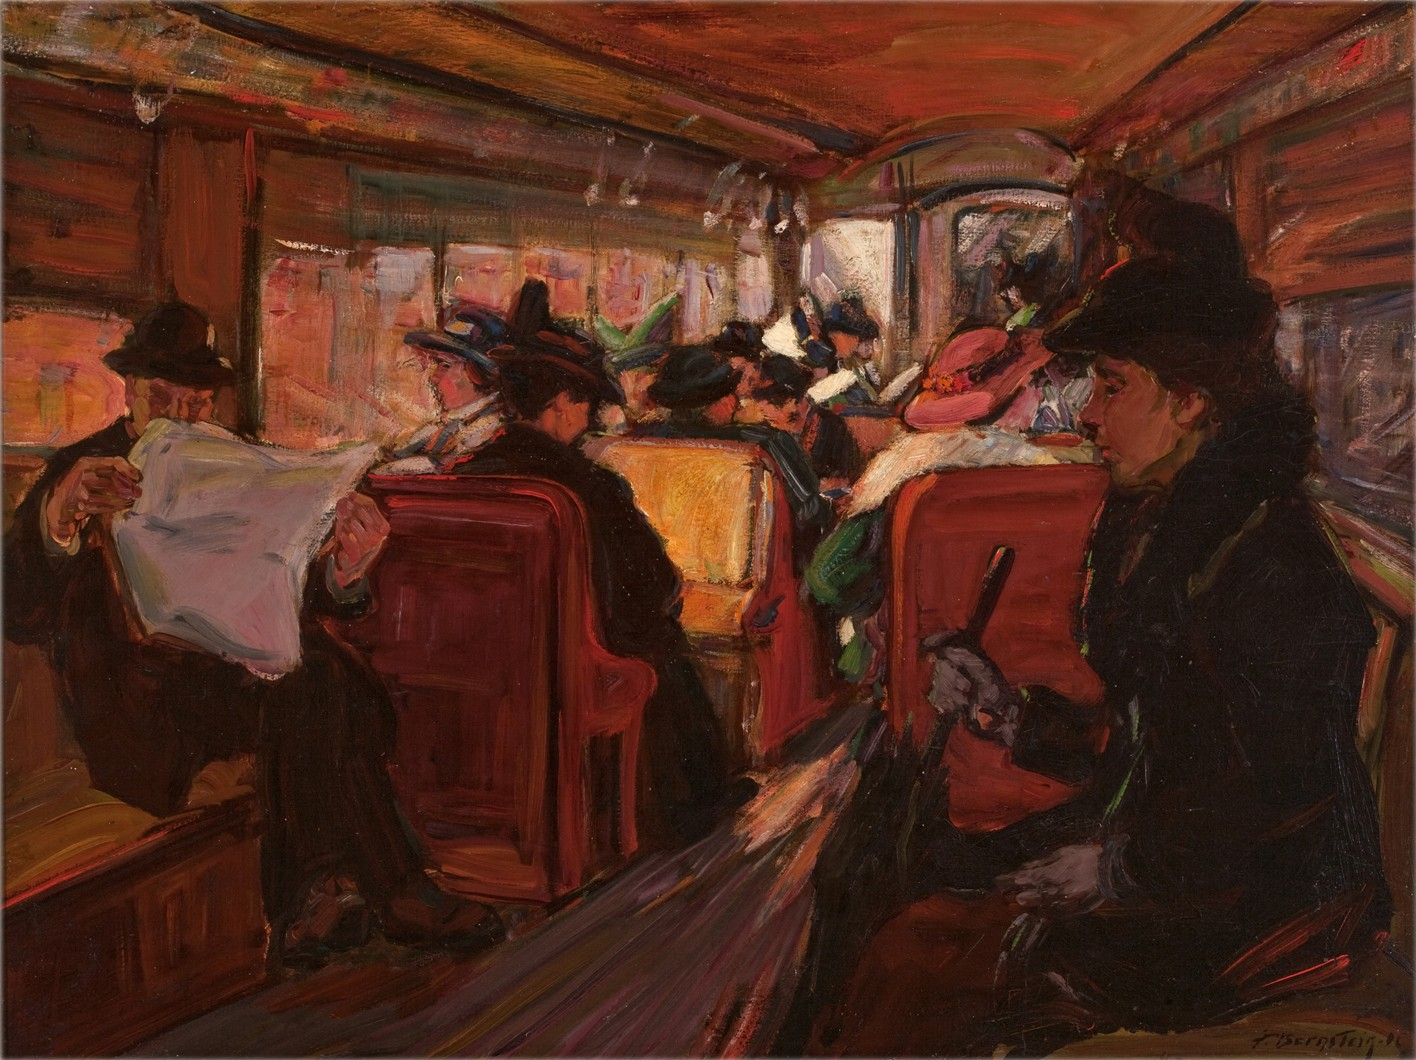 This work by Theresa F. Bernstein depicts passengers in an elevated train